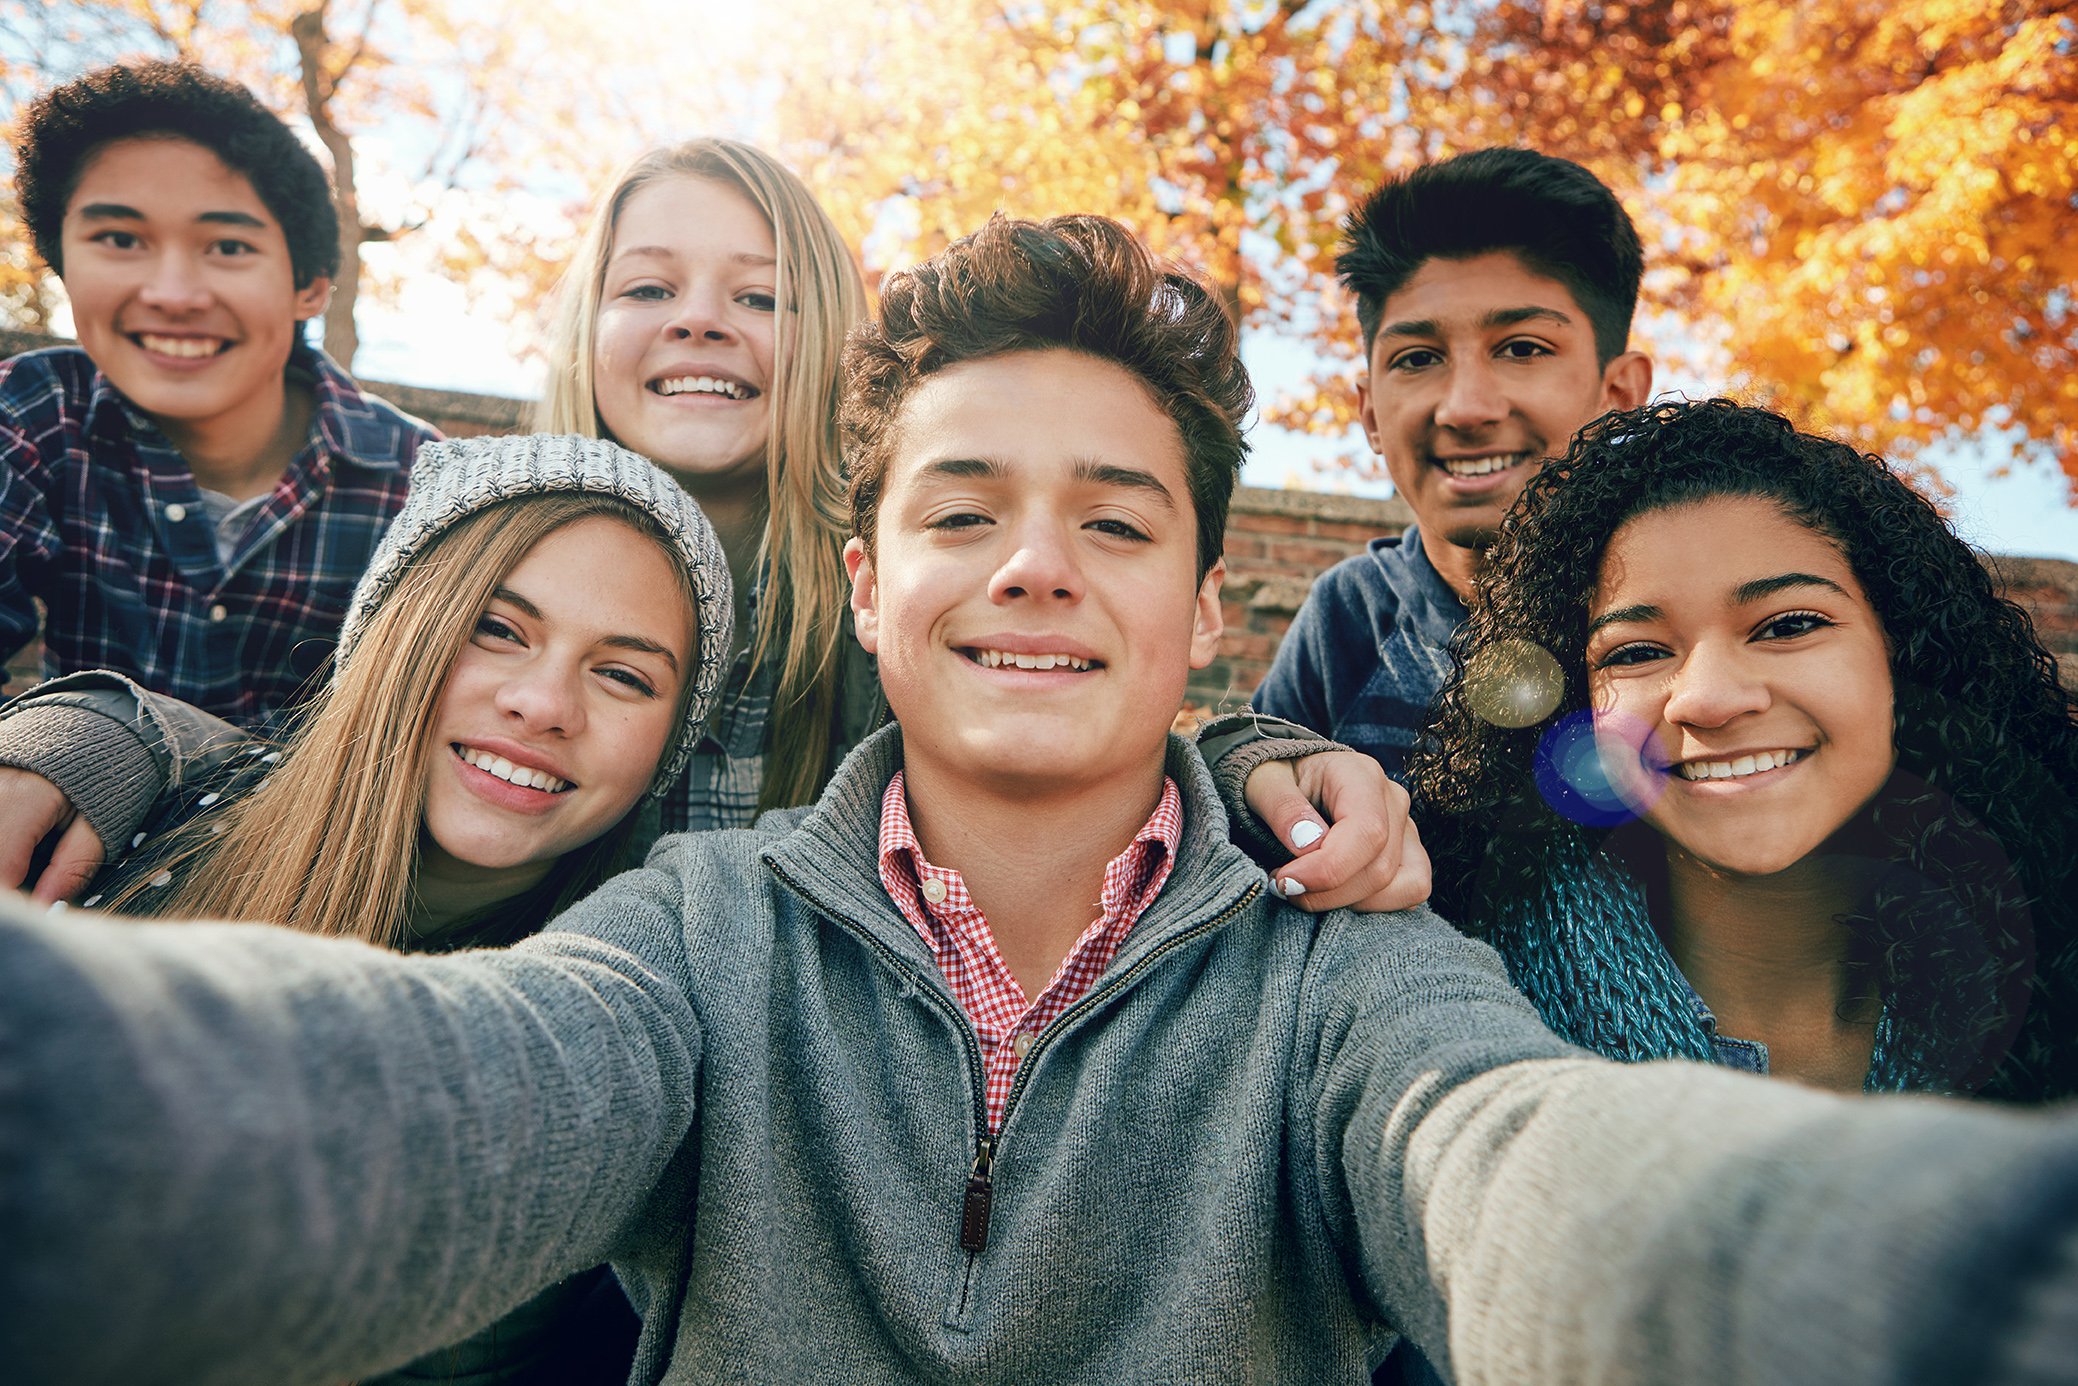 Portrait of a group of young friends posing for a selfie together outside